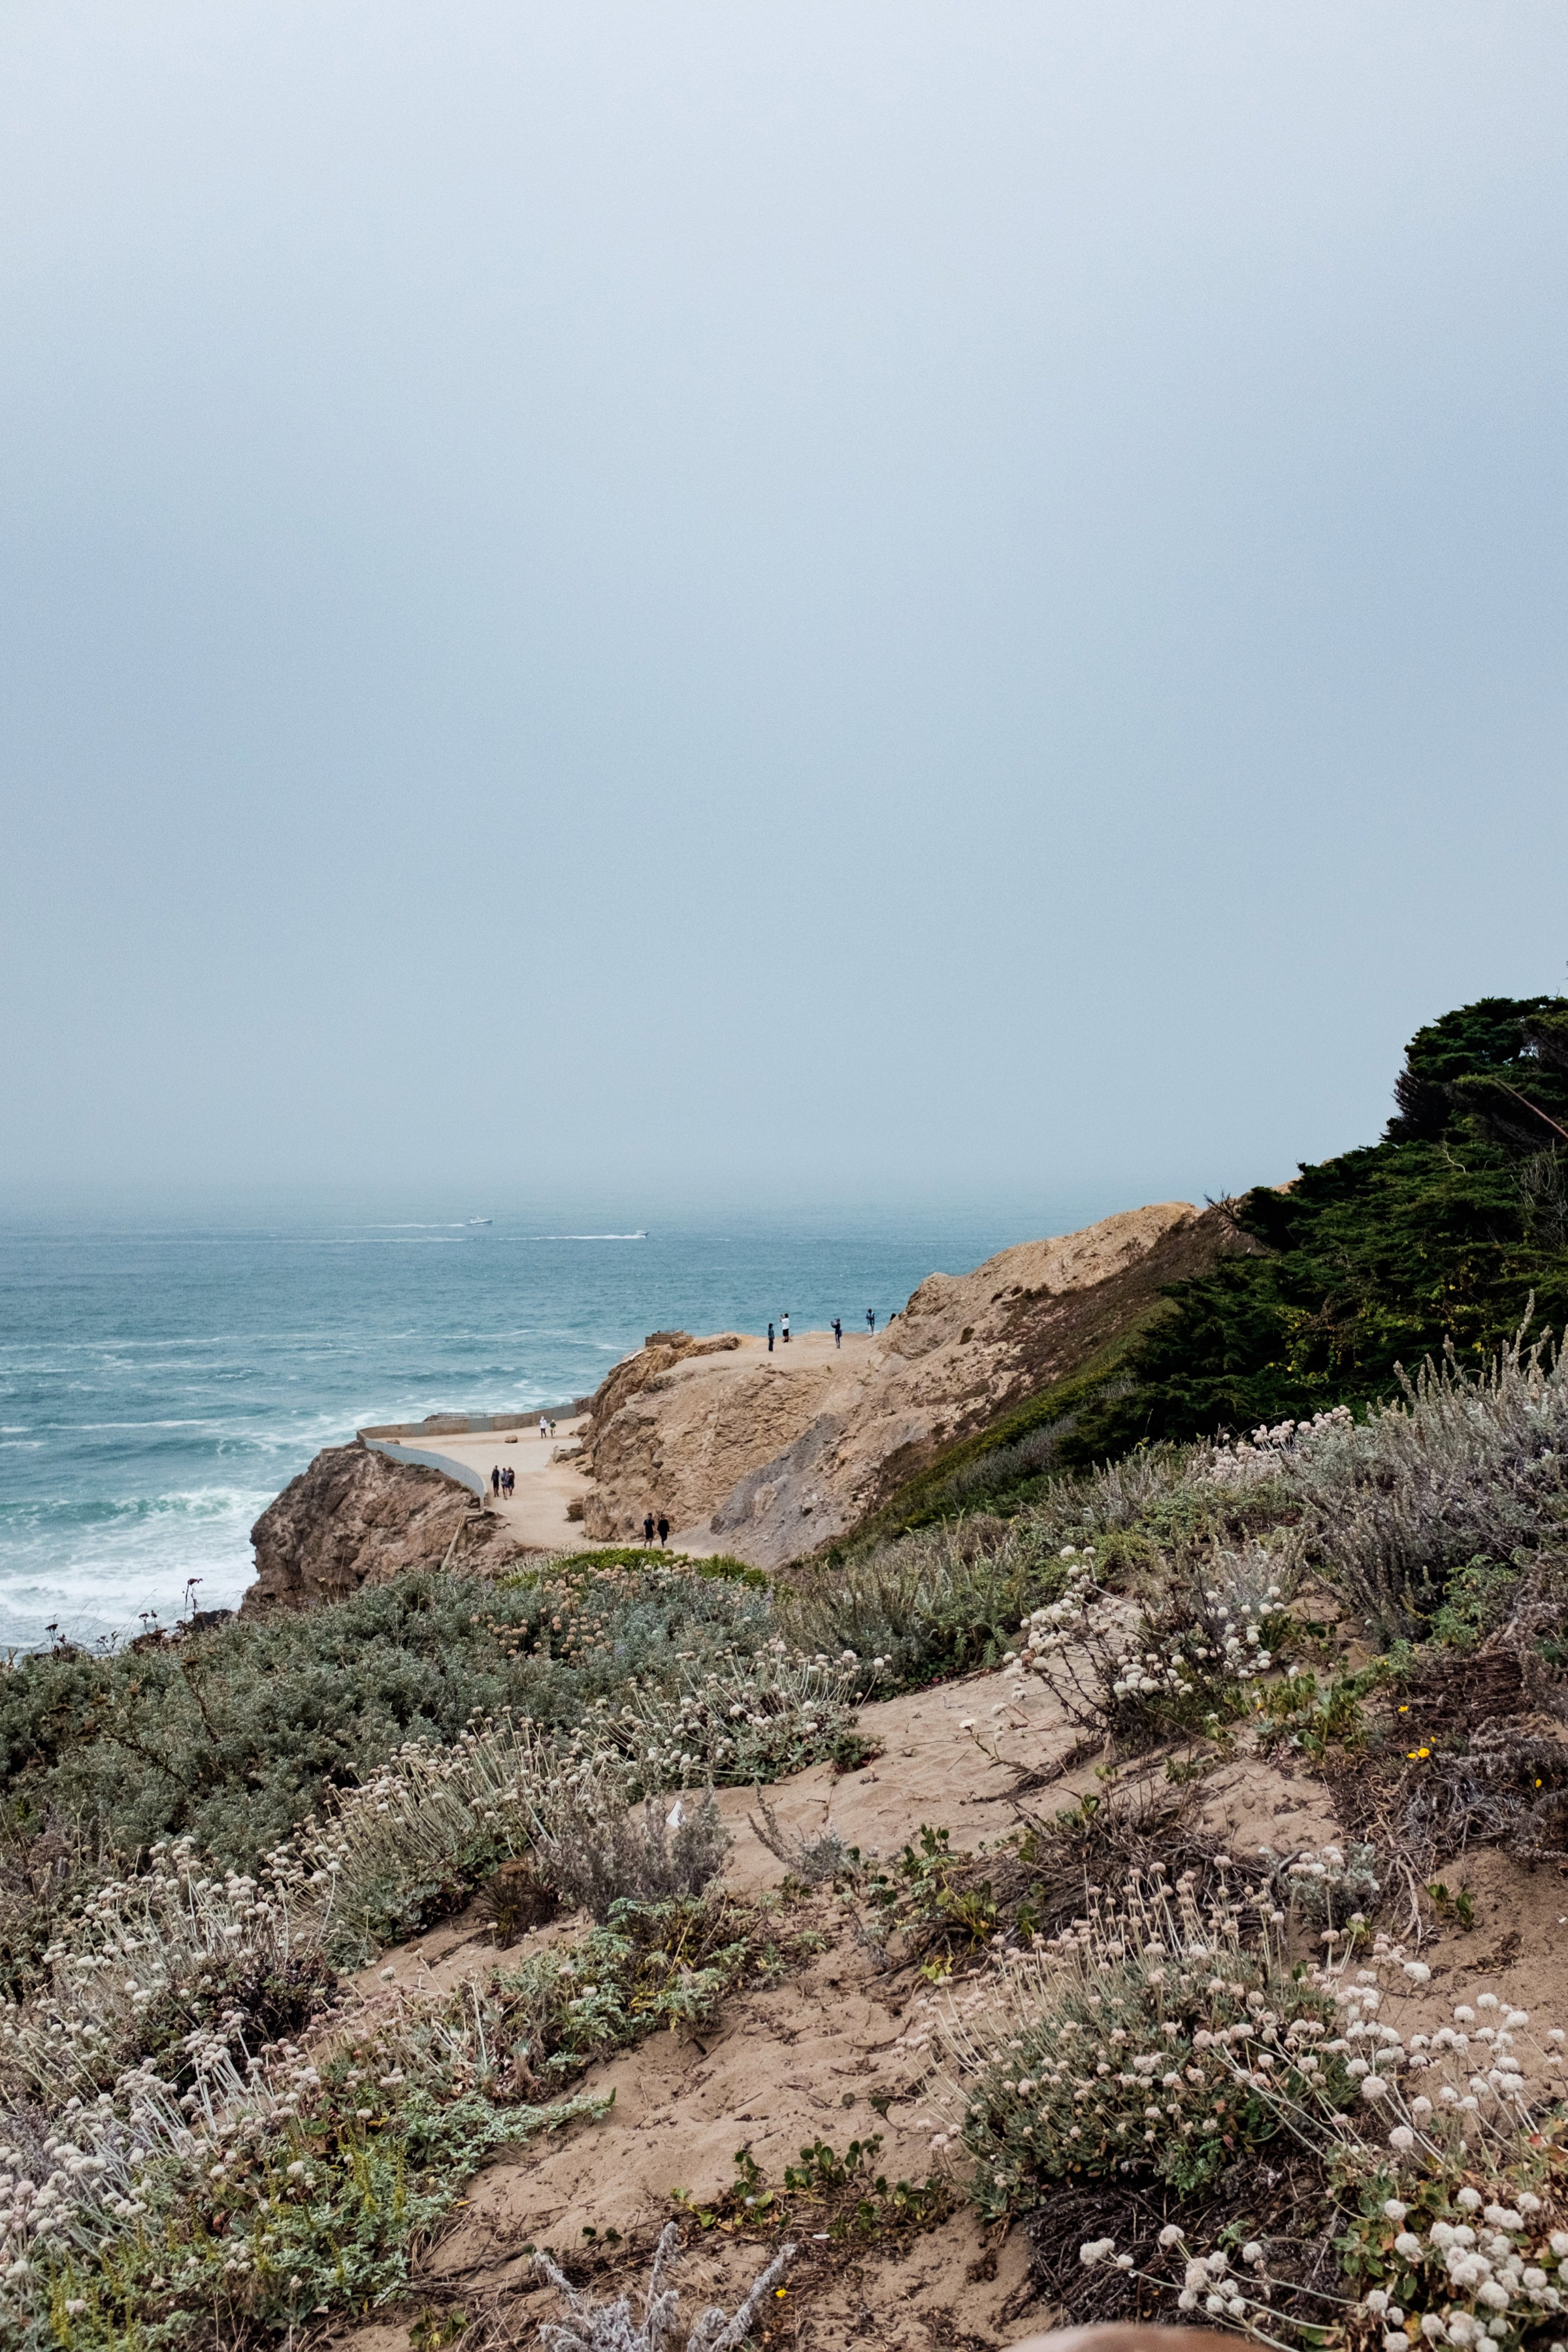 While this trip was cold and windy, the vegetation and growth contrasts beautifully with the coastal views.